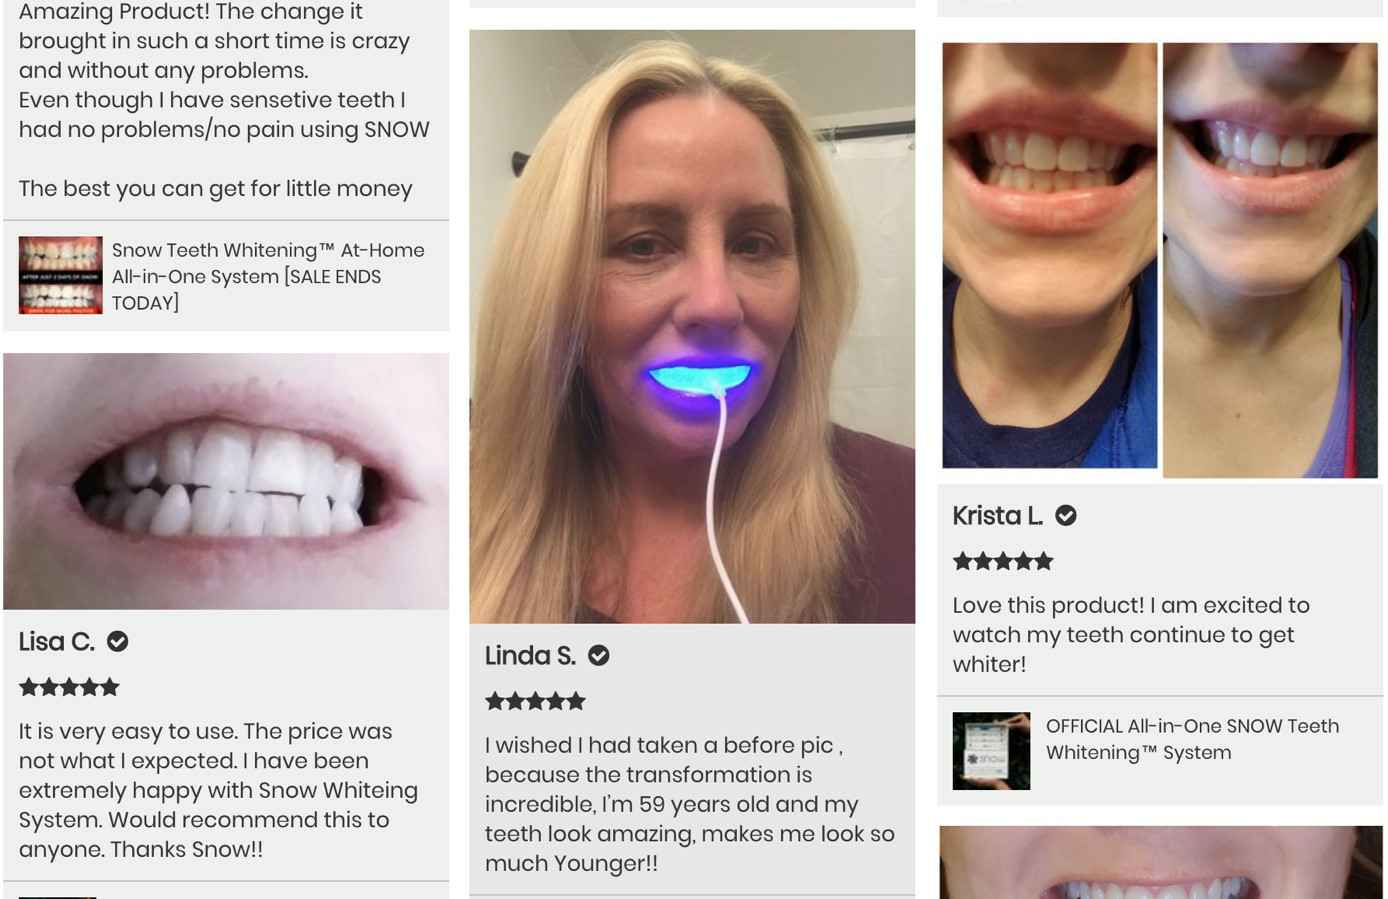 Kit Snow Teeth Whitening Warranty Next Business Day